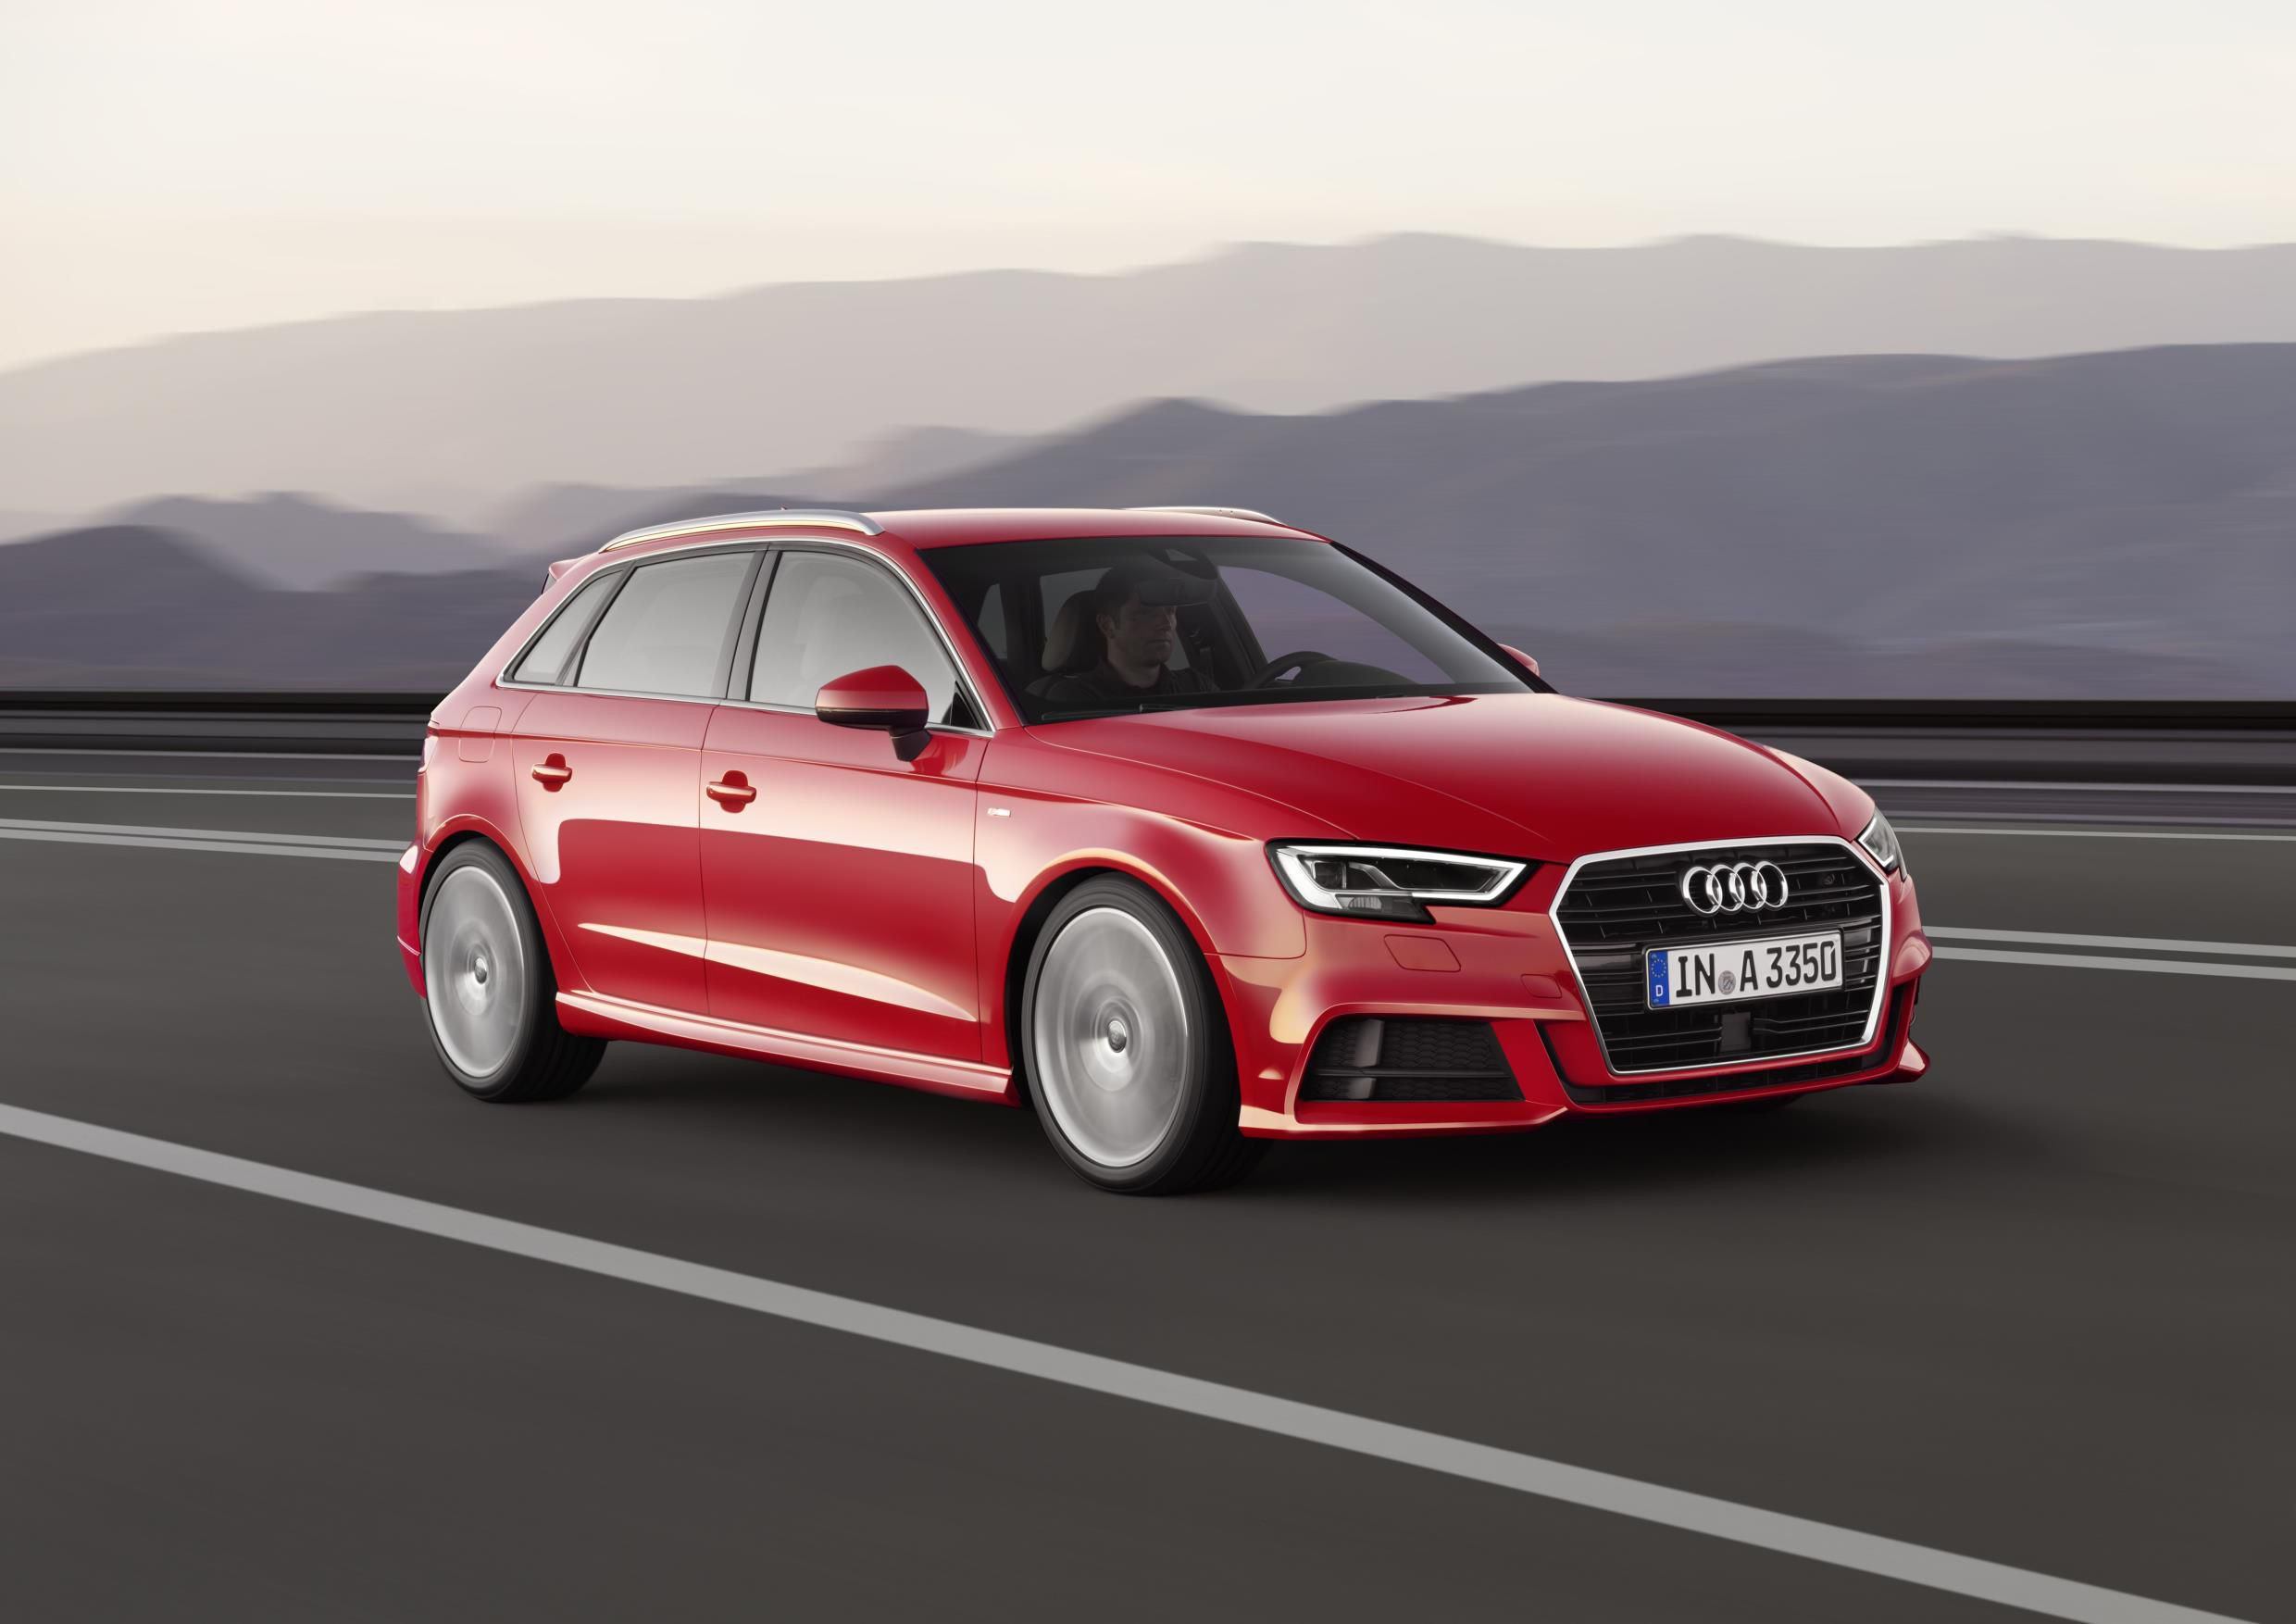 Red Audi A3 Sportback driving at speed